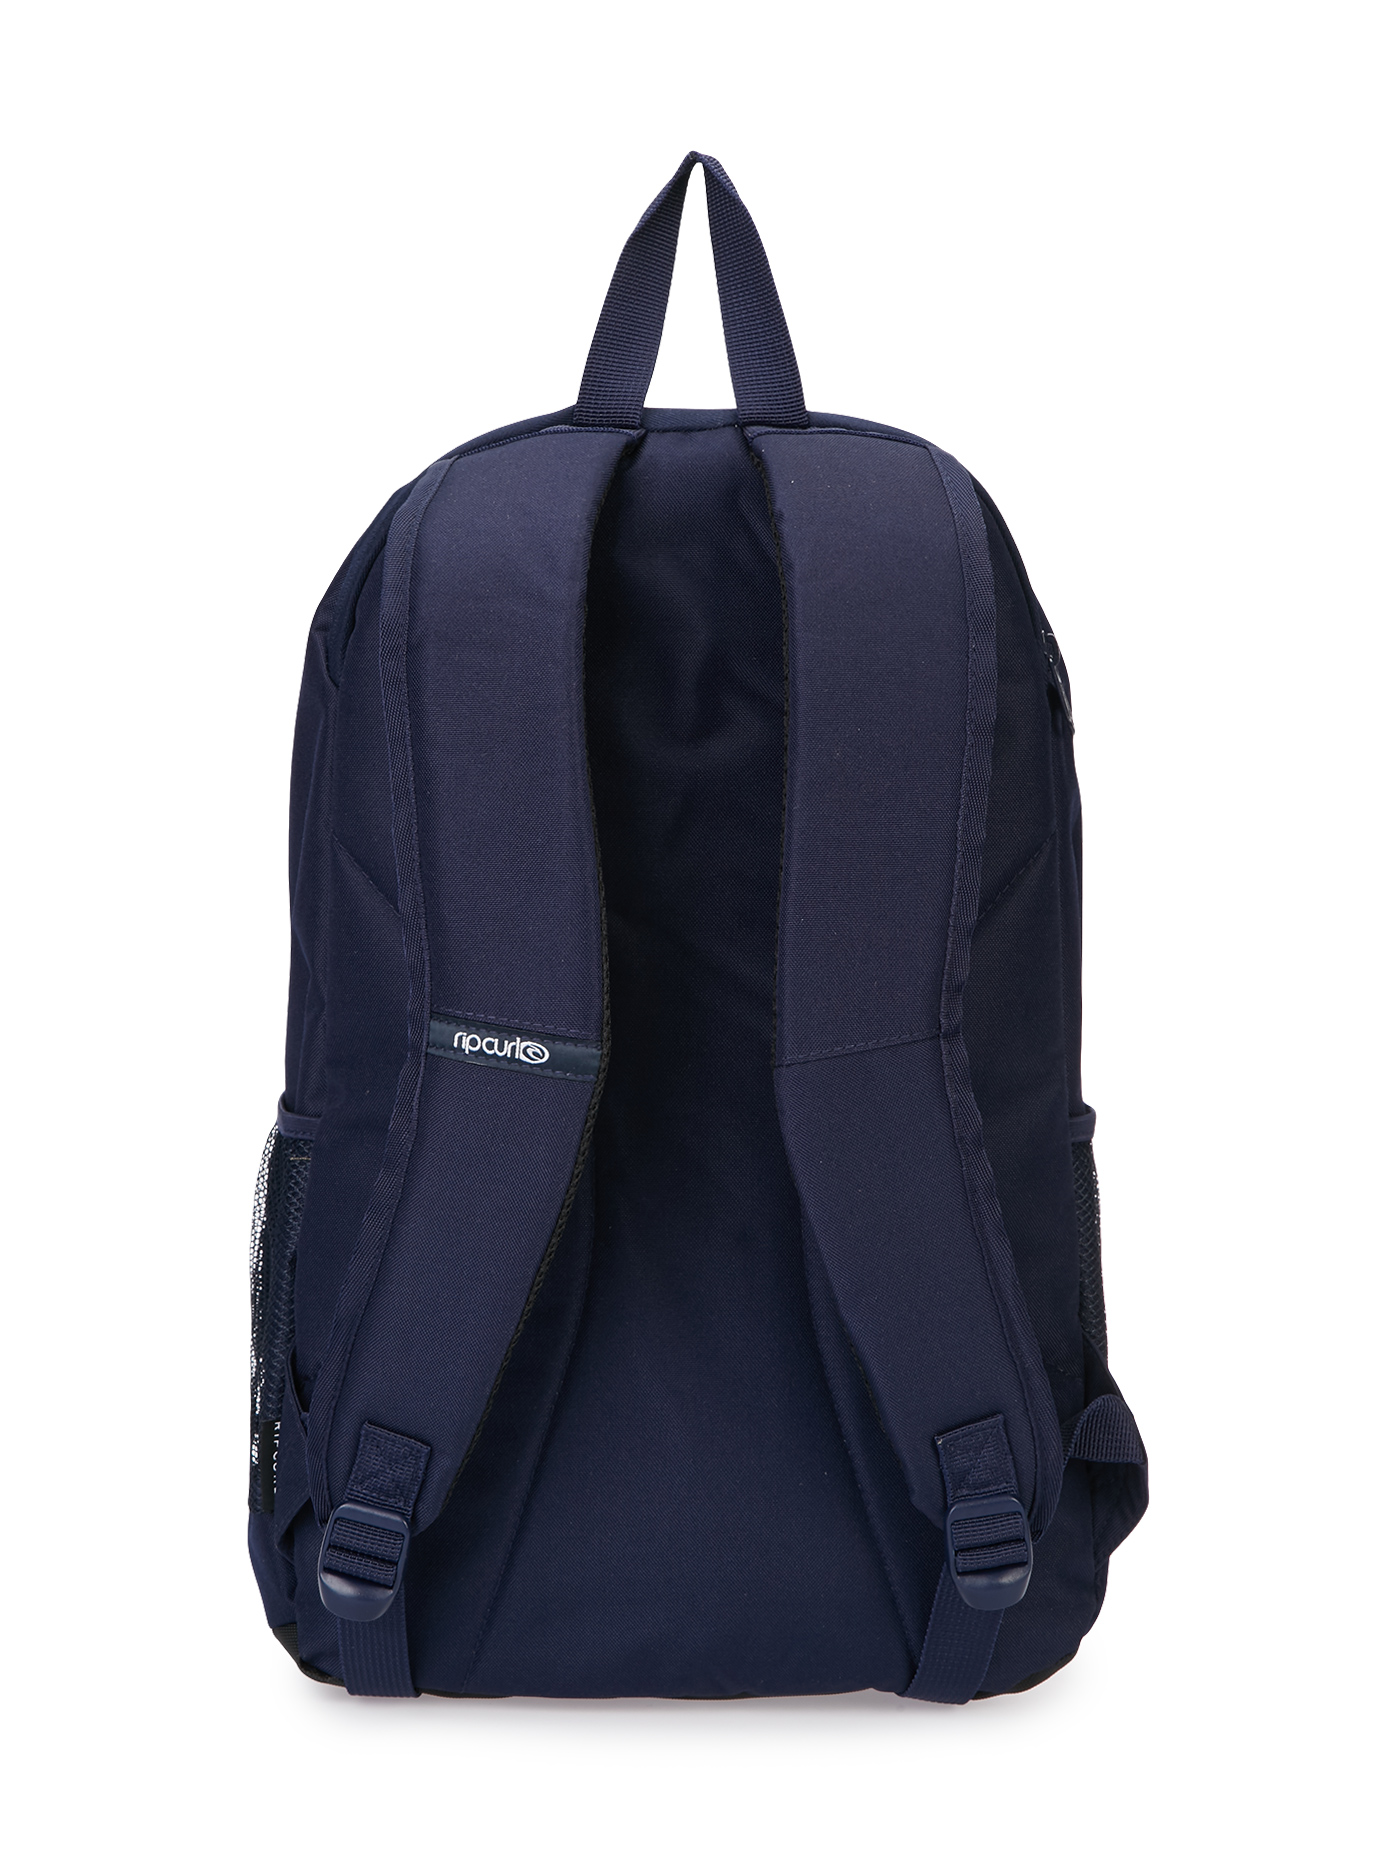 Autumn18 Ozone Combo Backpack Navy  f8dc0a10a7